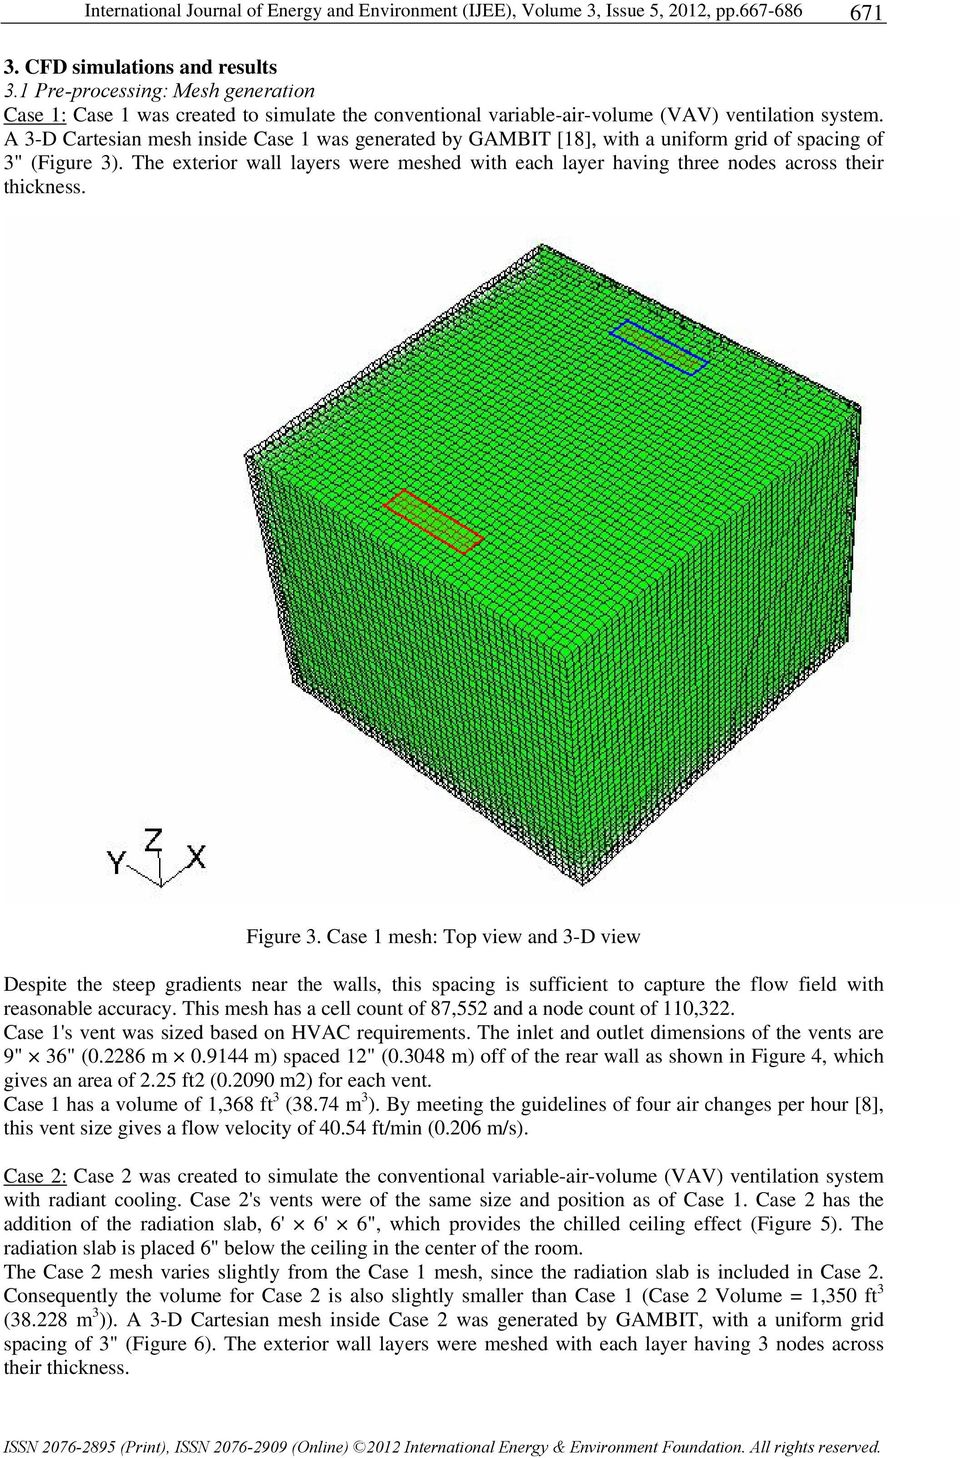 "A 3-D Cartesian mesh inside Case 1 was generated by GAMBIT [18], with a uniform grid of spacing of 3"" (Figure 3)."